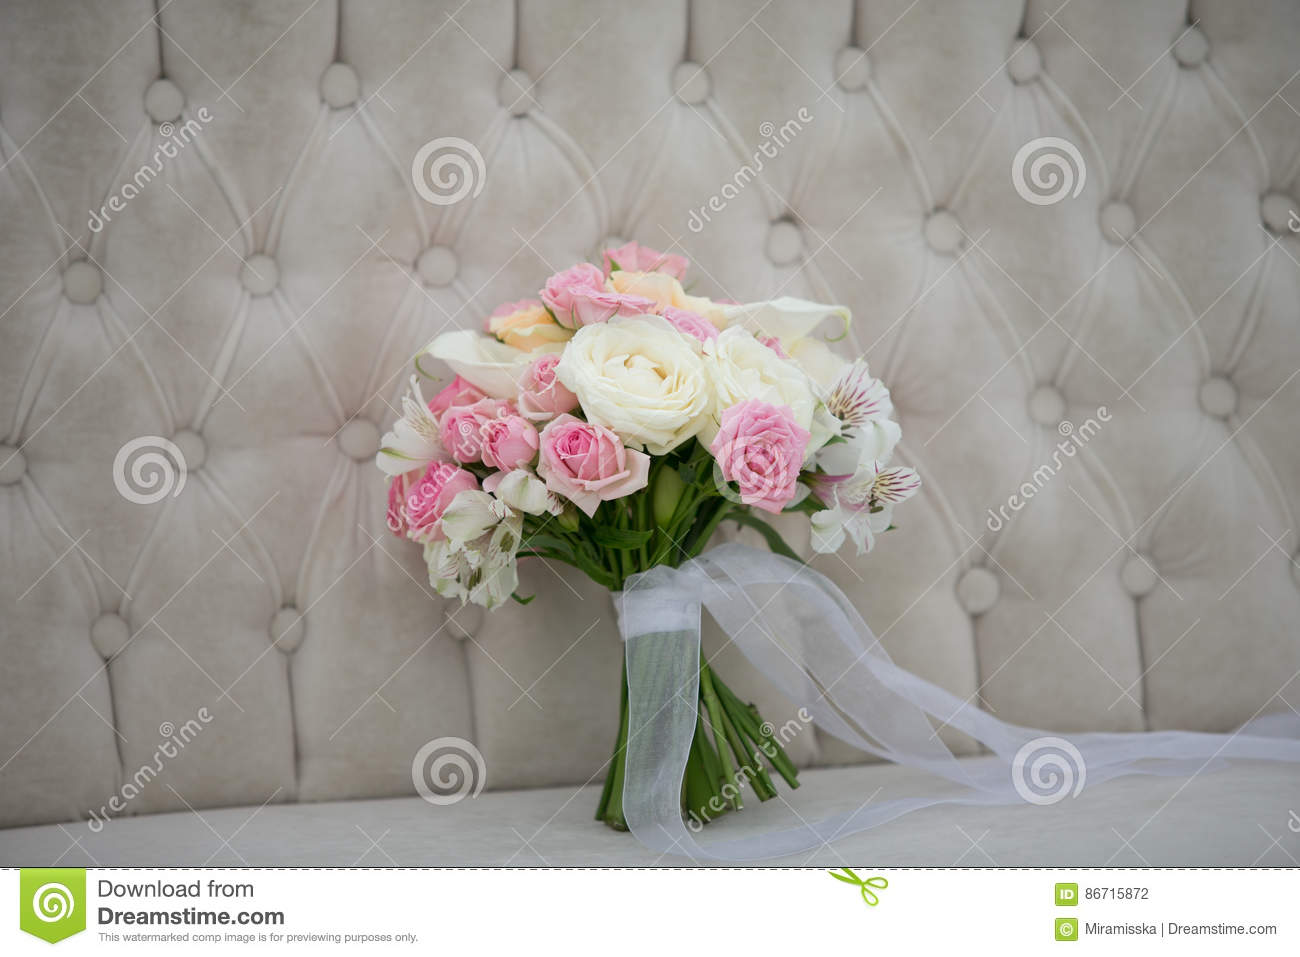 Wedding Flowers Bridal Bouquet Romantic Blooming Decor Decoration Banquet Stock Photo Image Of Bloom Beauty 86715872